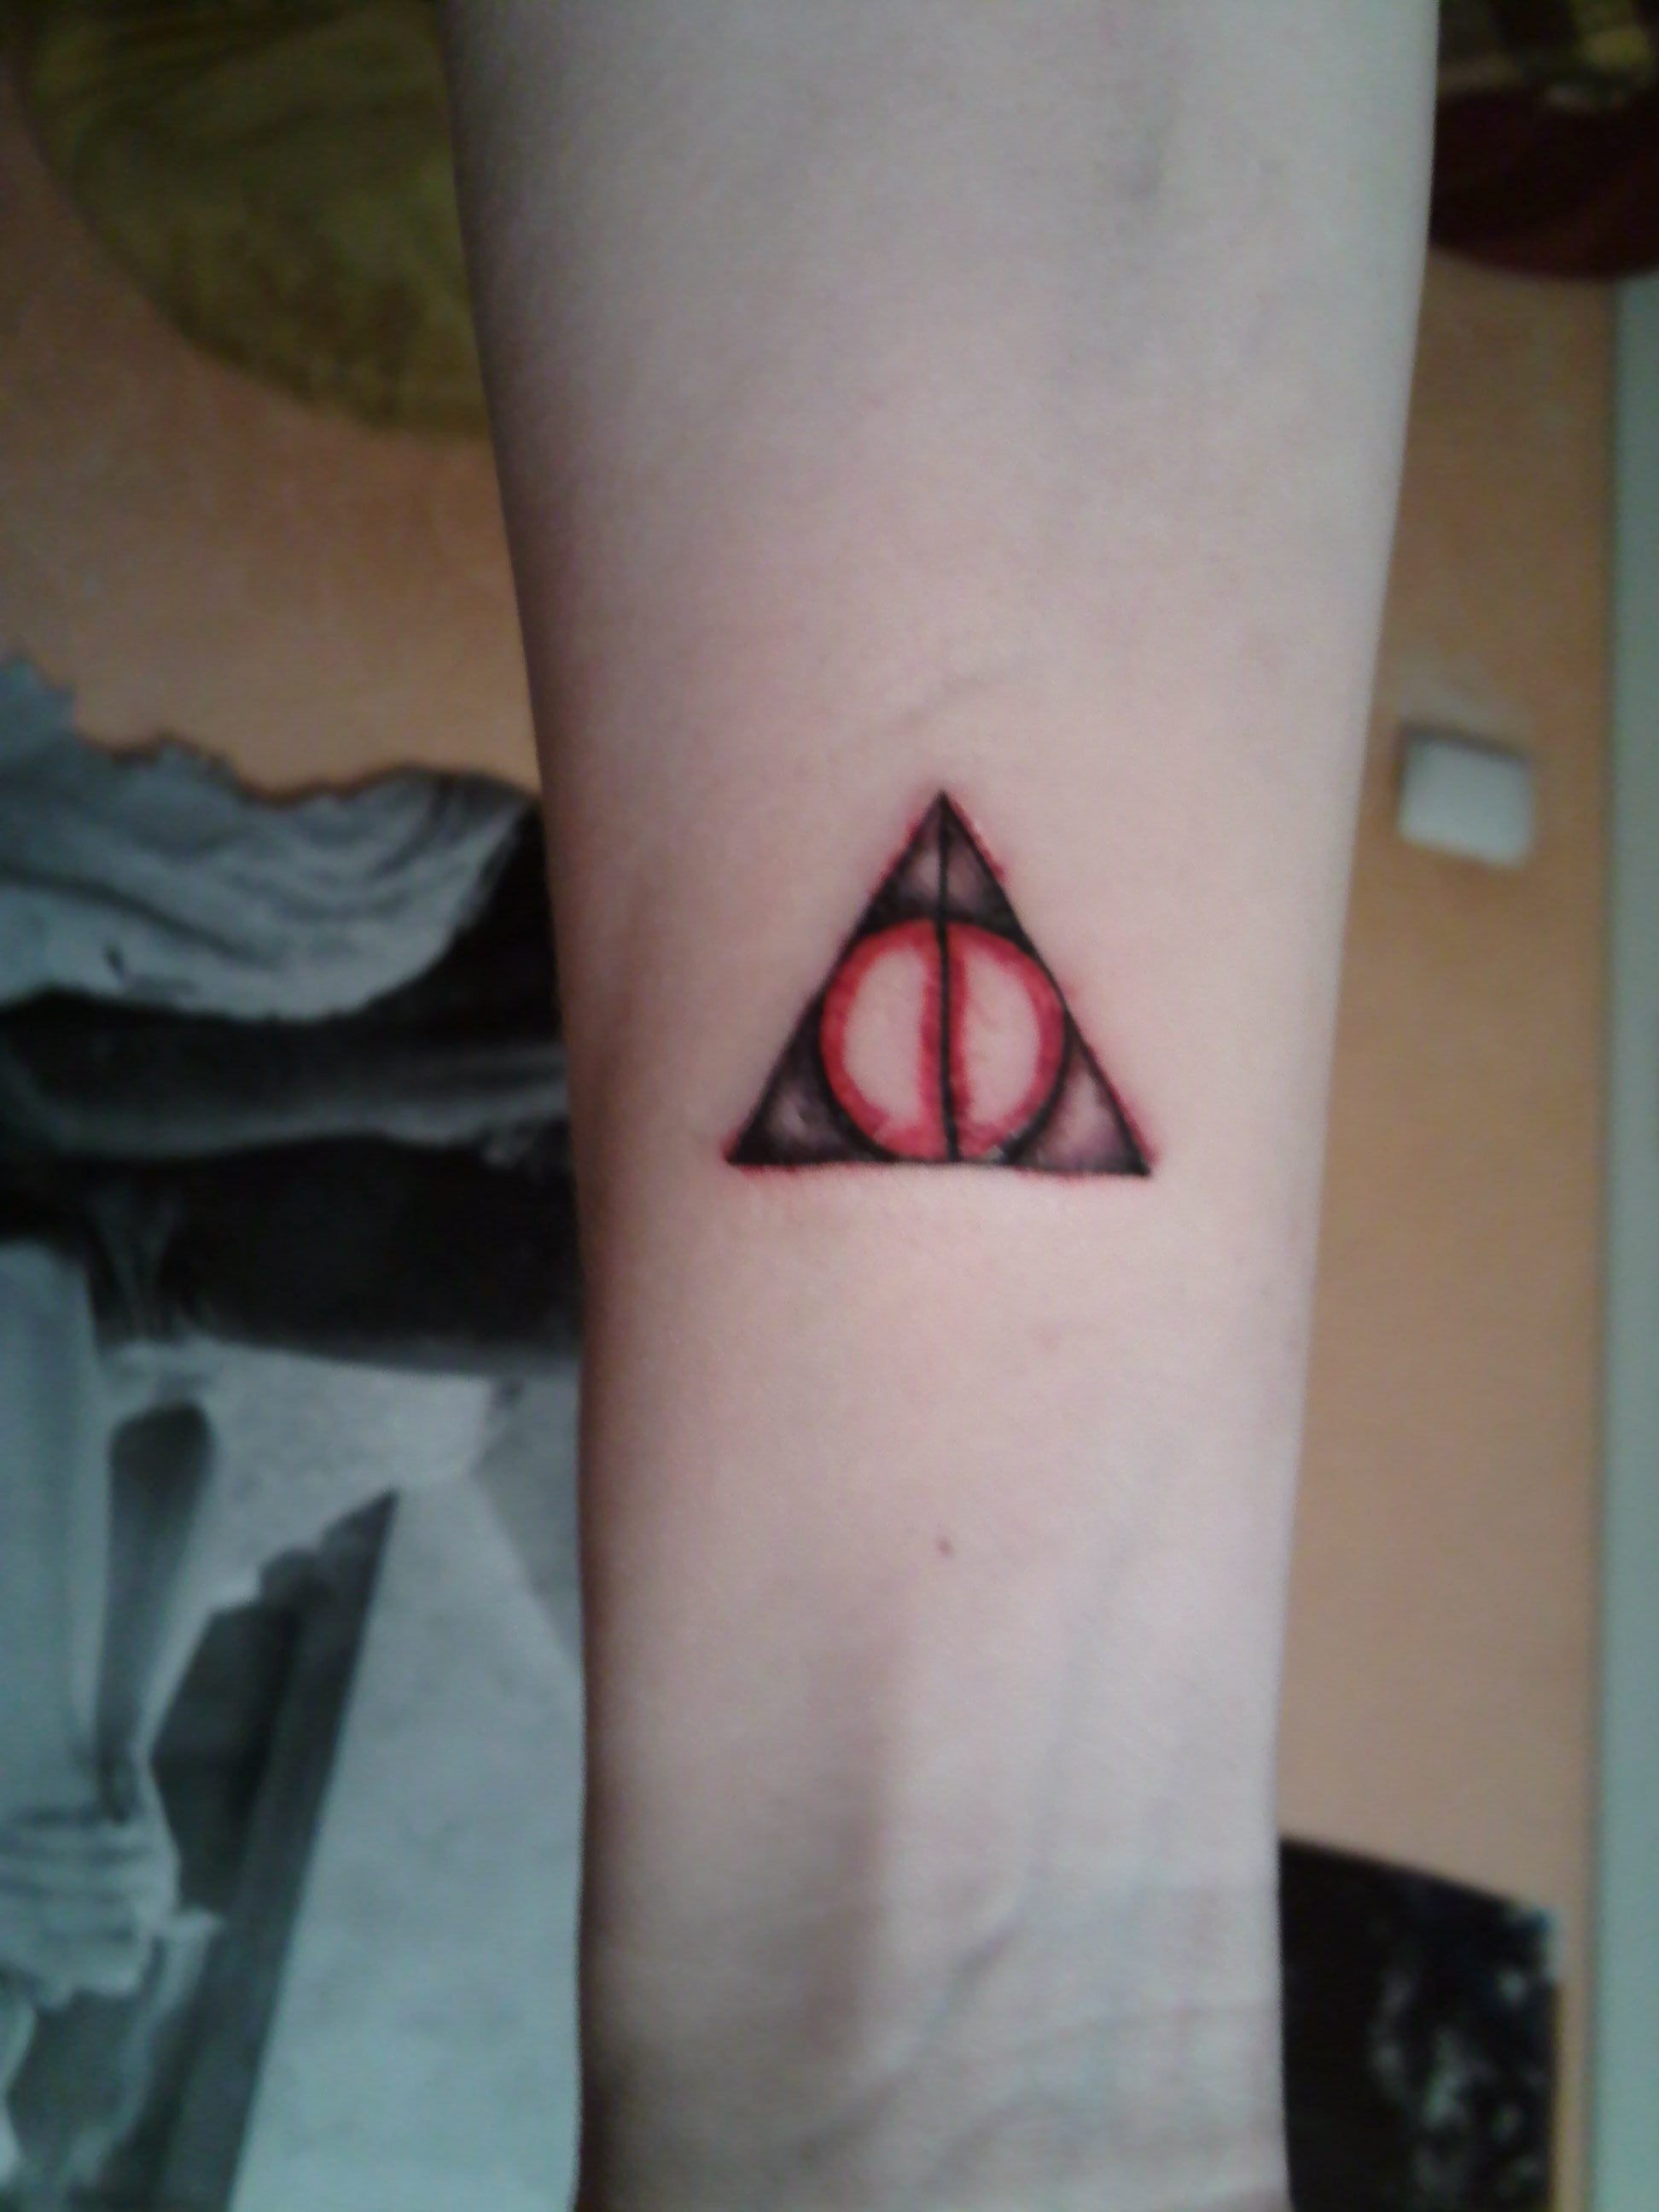 Deathly Hallows tattoo by diiwaanc